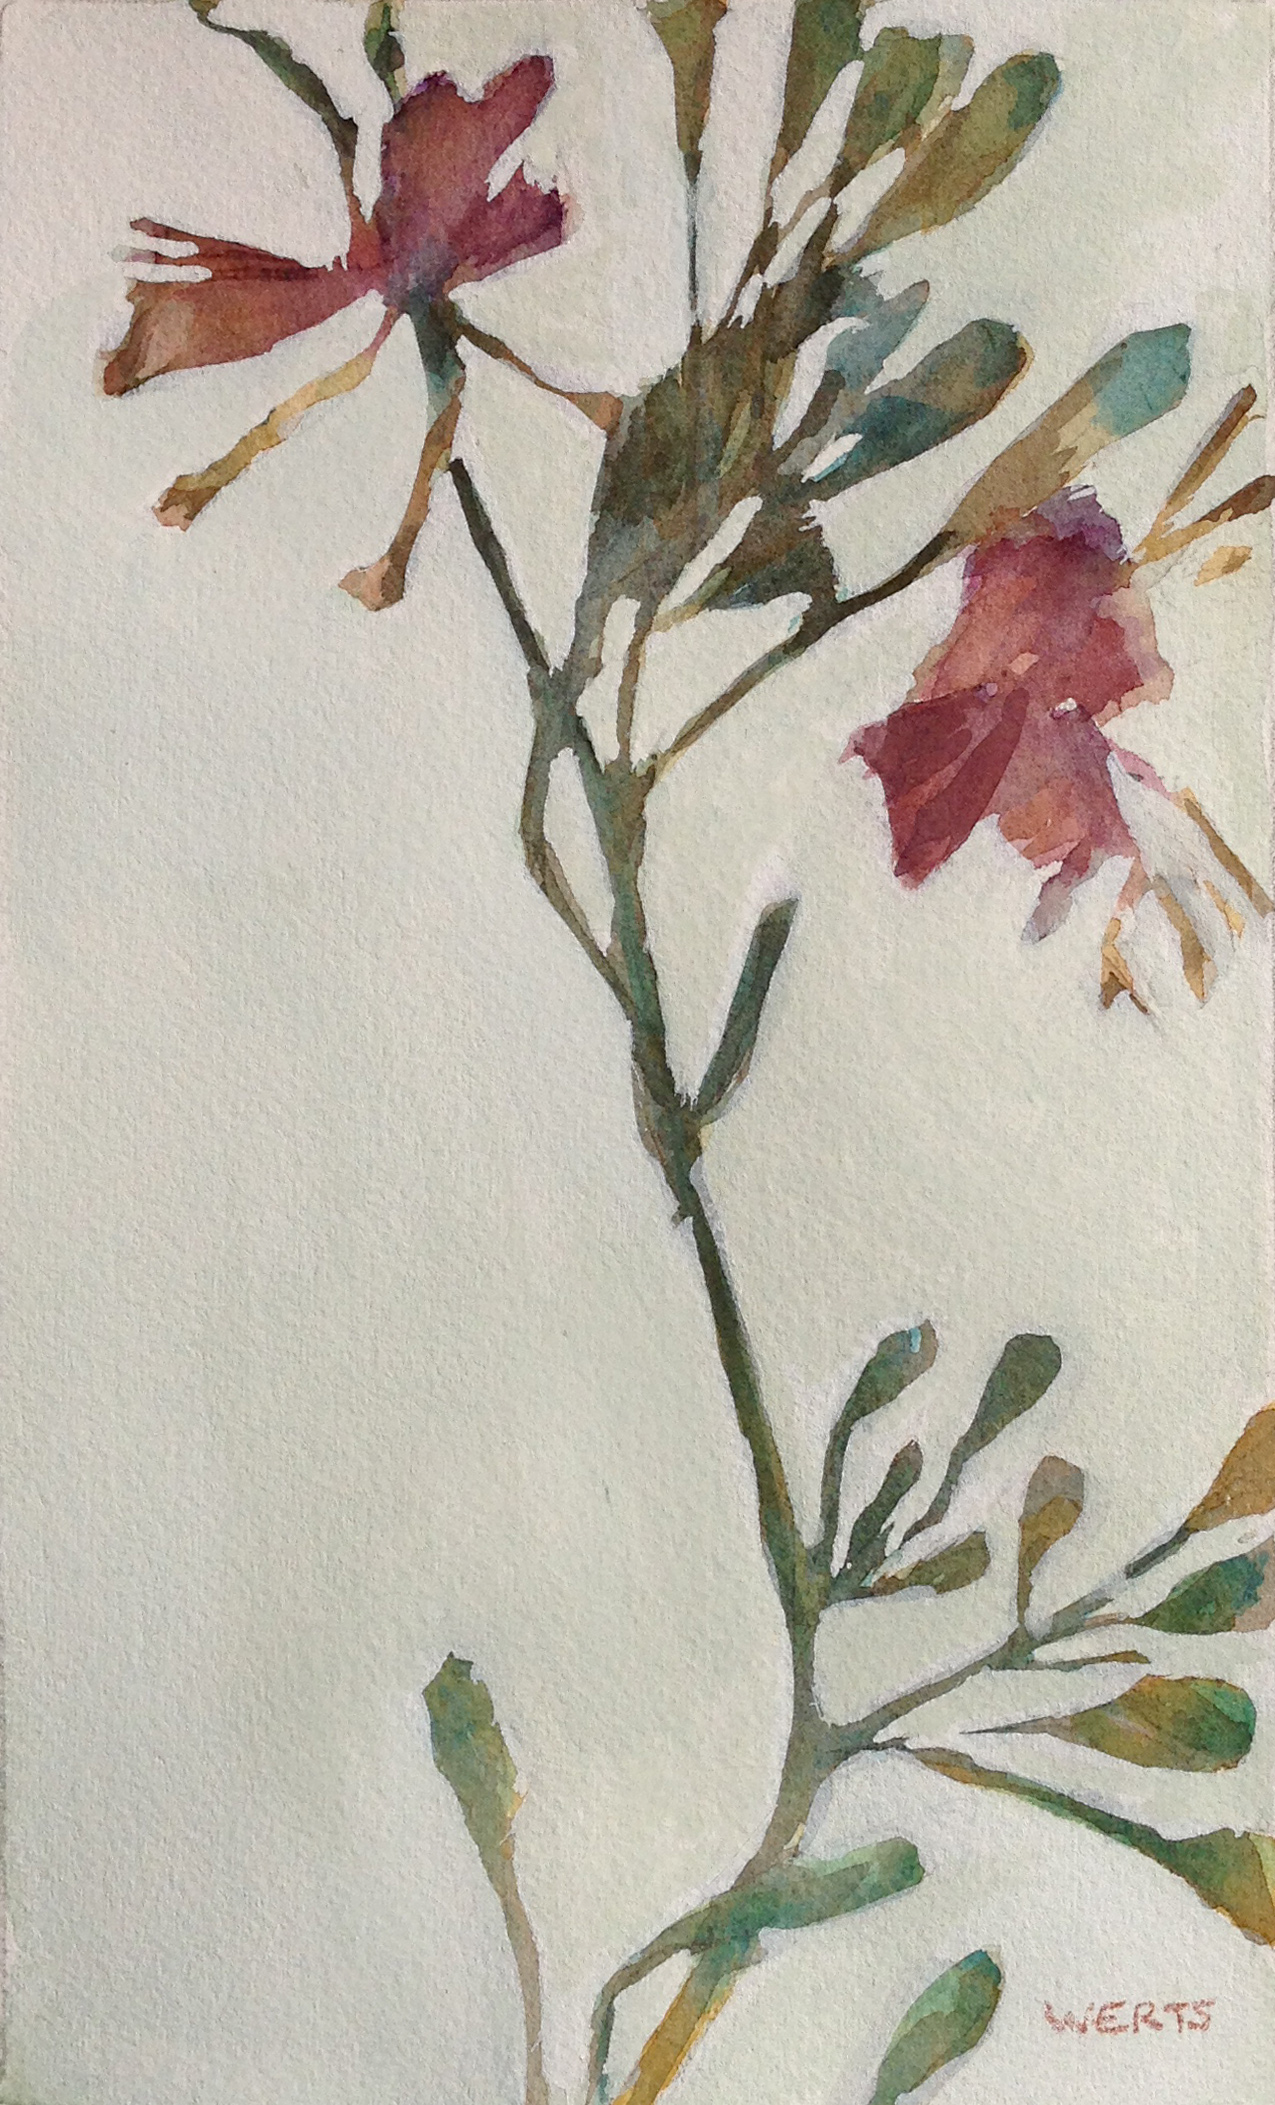 Pressed Flowers 3 6x10 Watercolor On Paper Diana Werts Studio